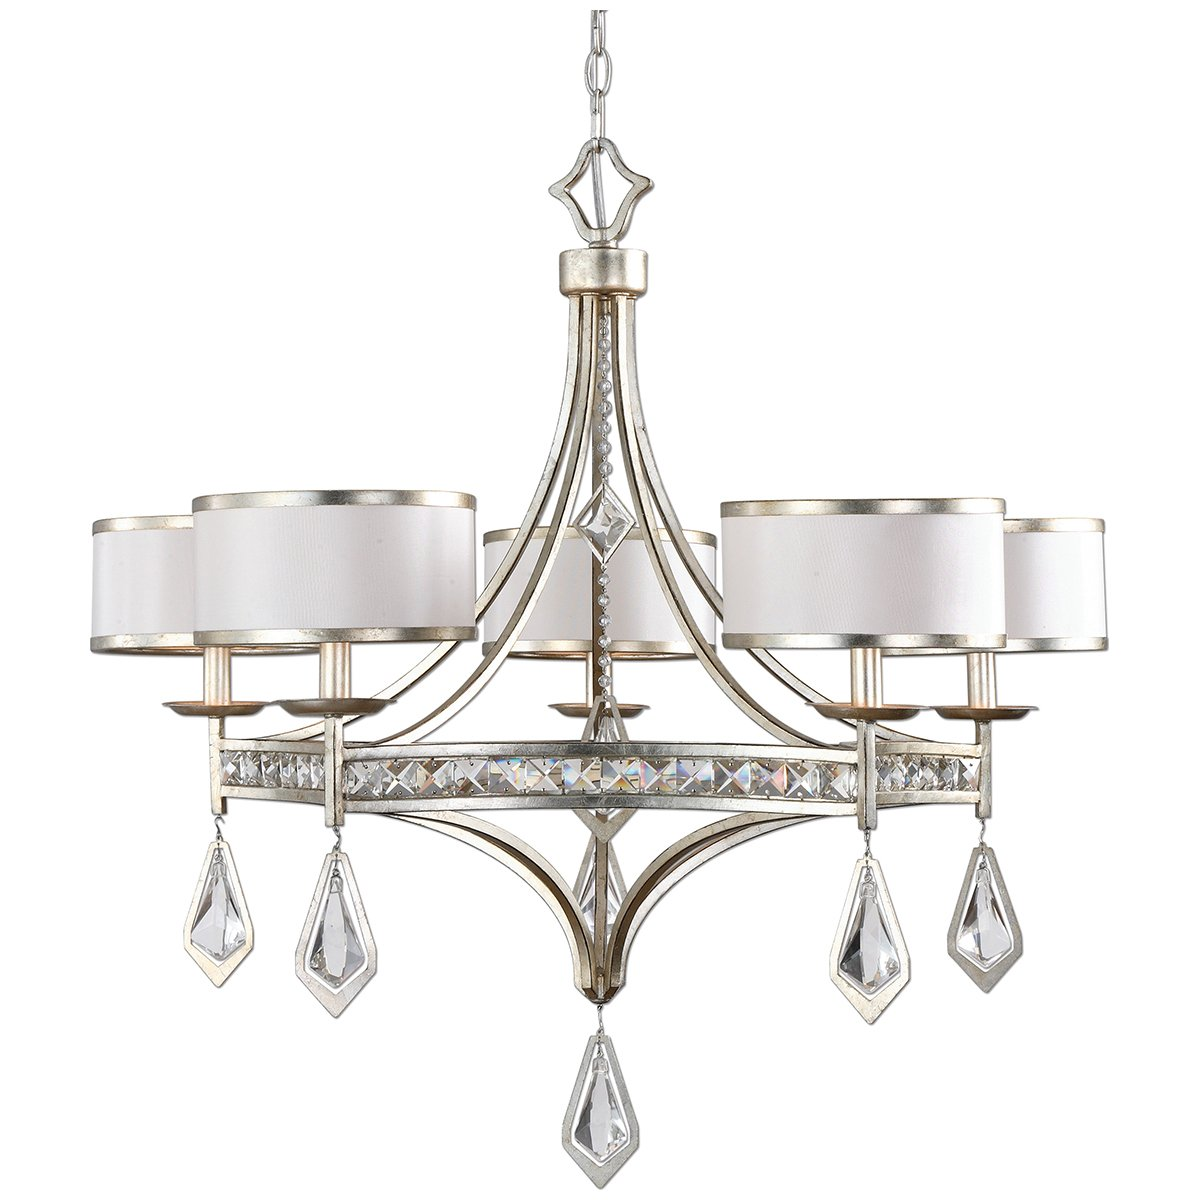 Amazon uttermost 21268 tamworth 5 light chandelier silver amazon uttermost 21268 tamworth 5 light chandelier silverchampagne home kitchen arubaitofo Images